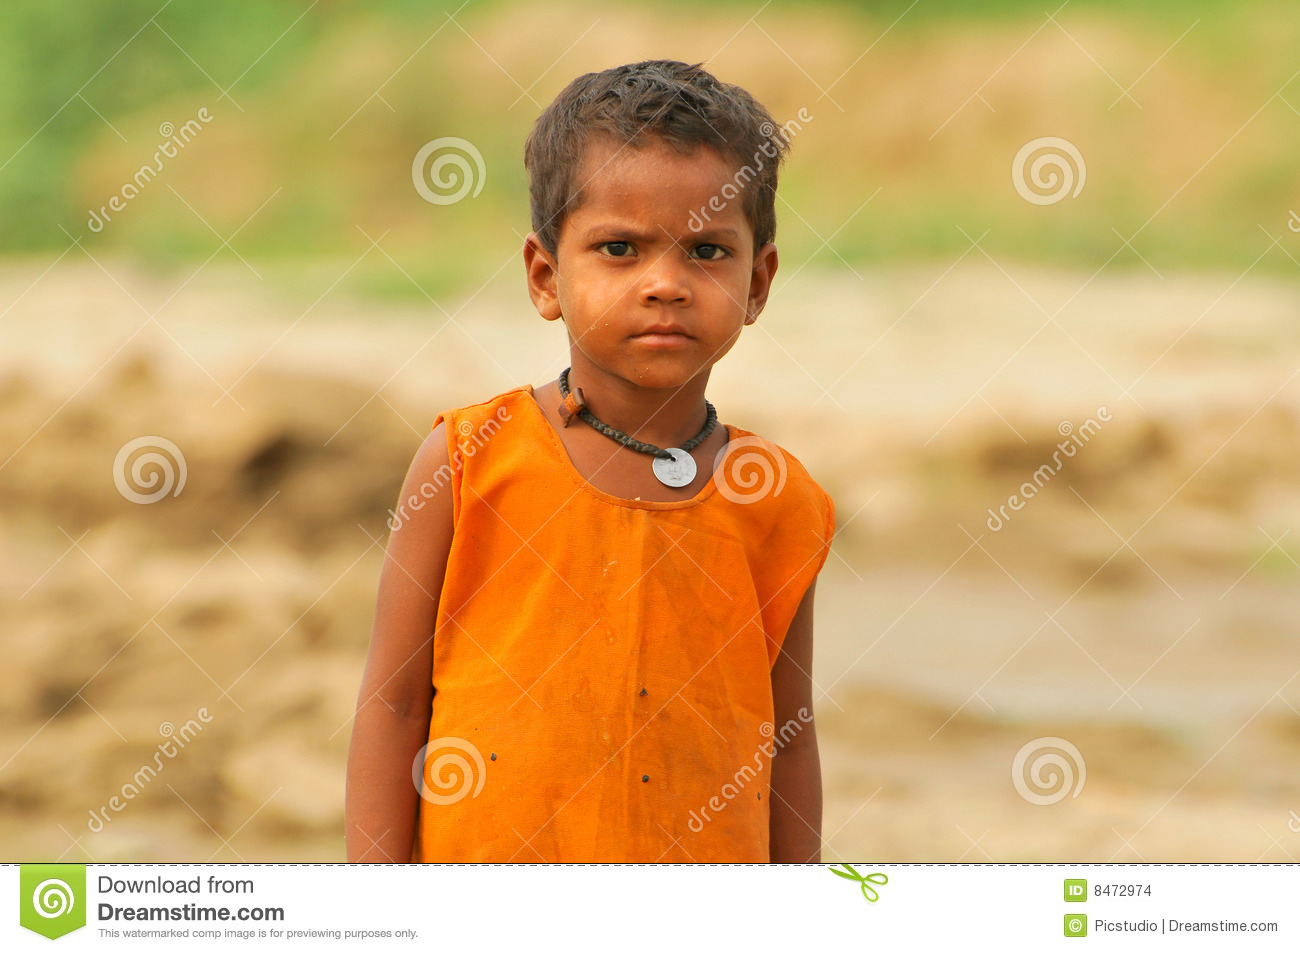 poor indian child stock photos royalty free stock images - Child Pictures Download